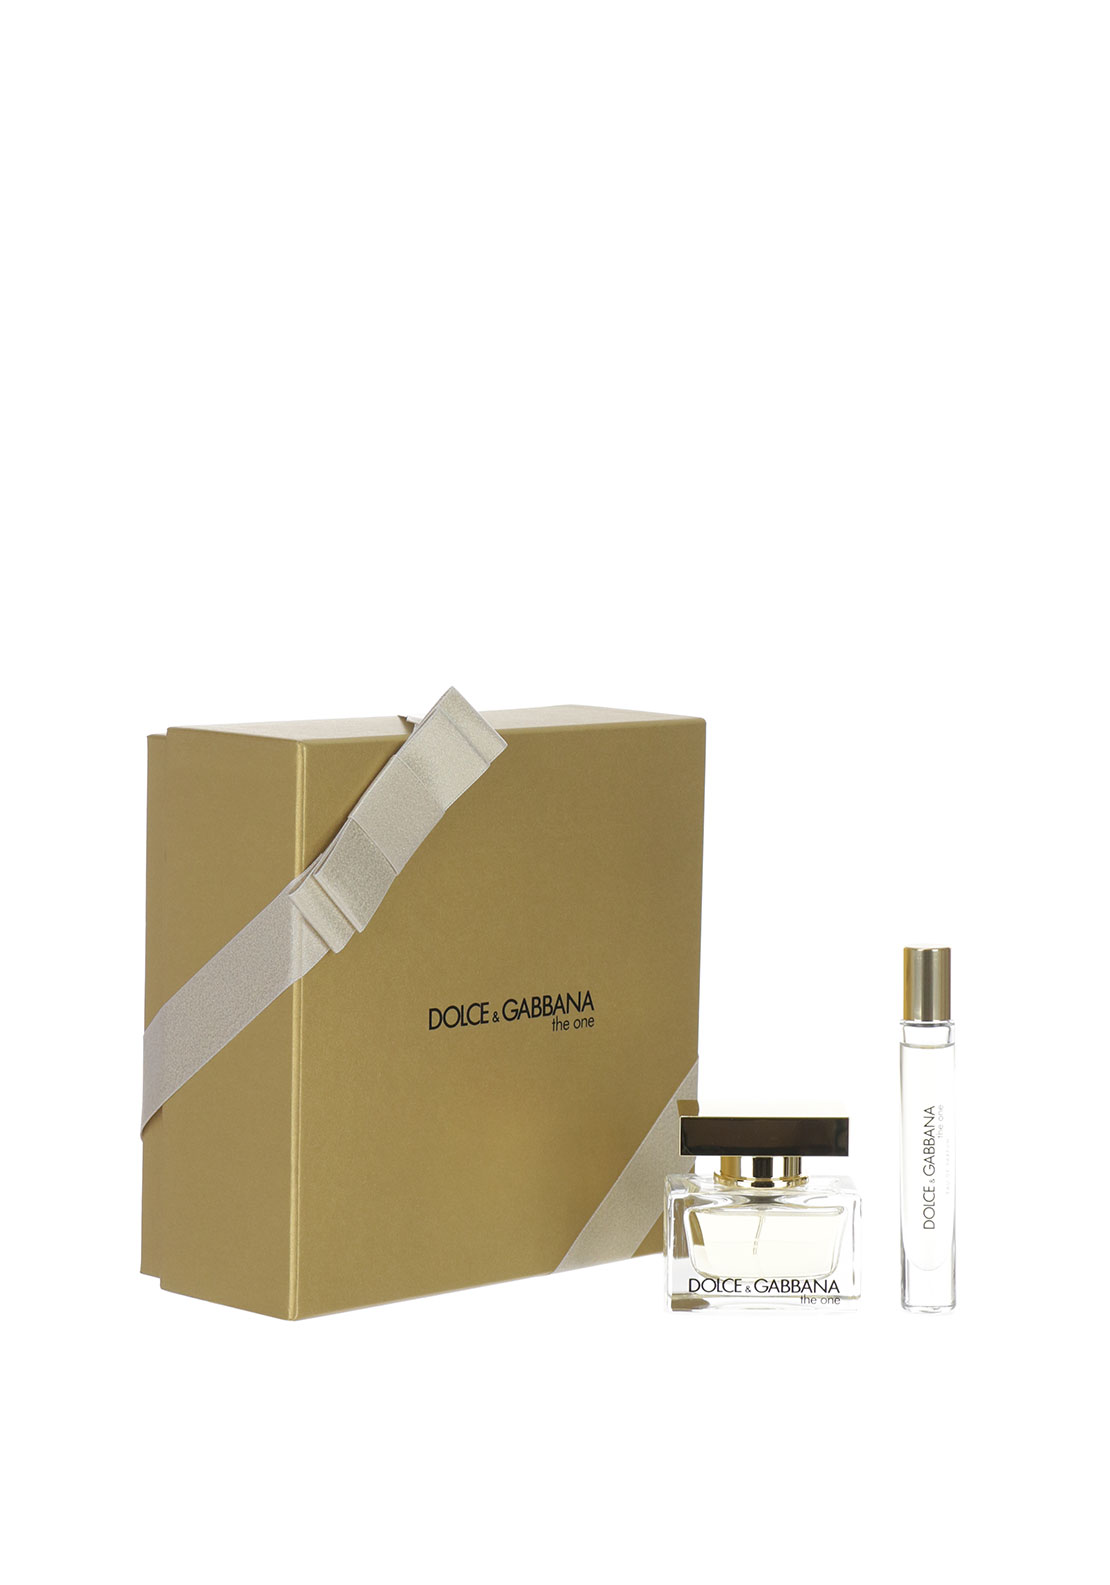 DOLCE & GABBANA the one Gift Set for Her